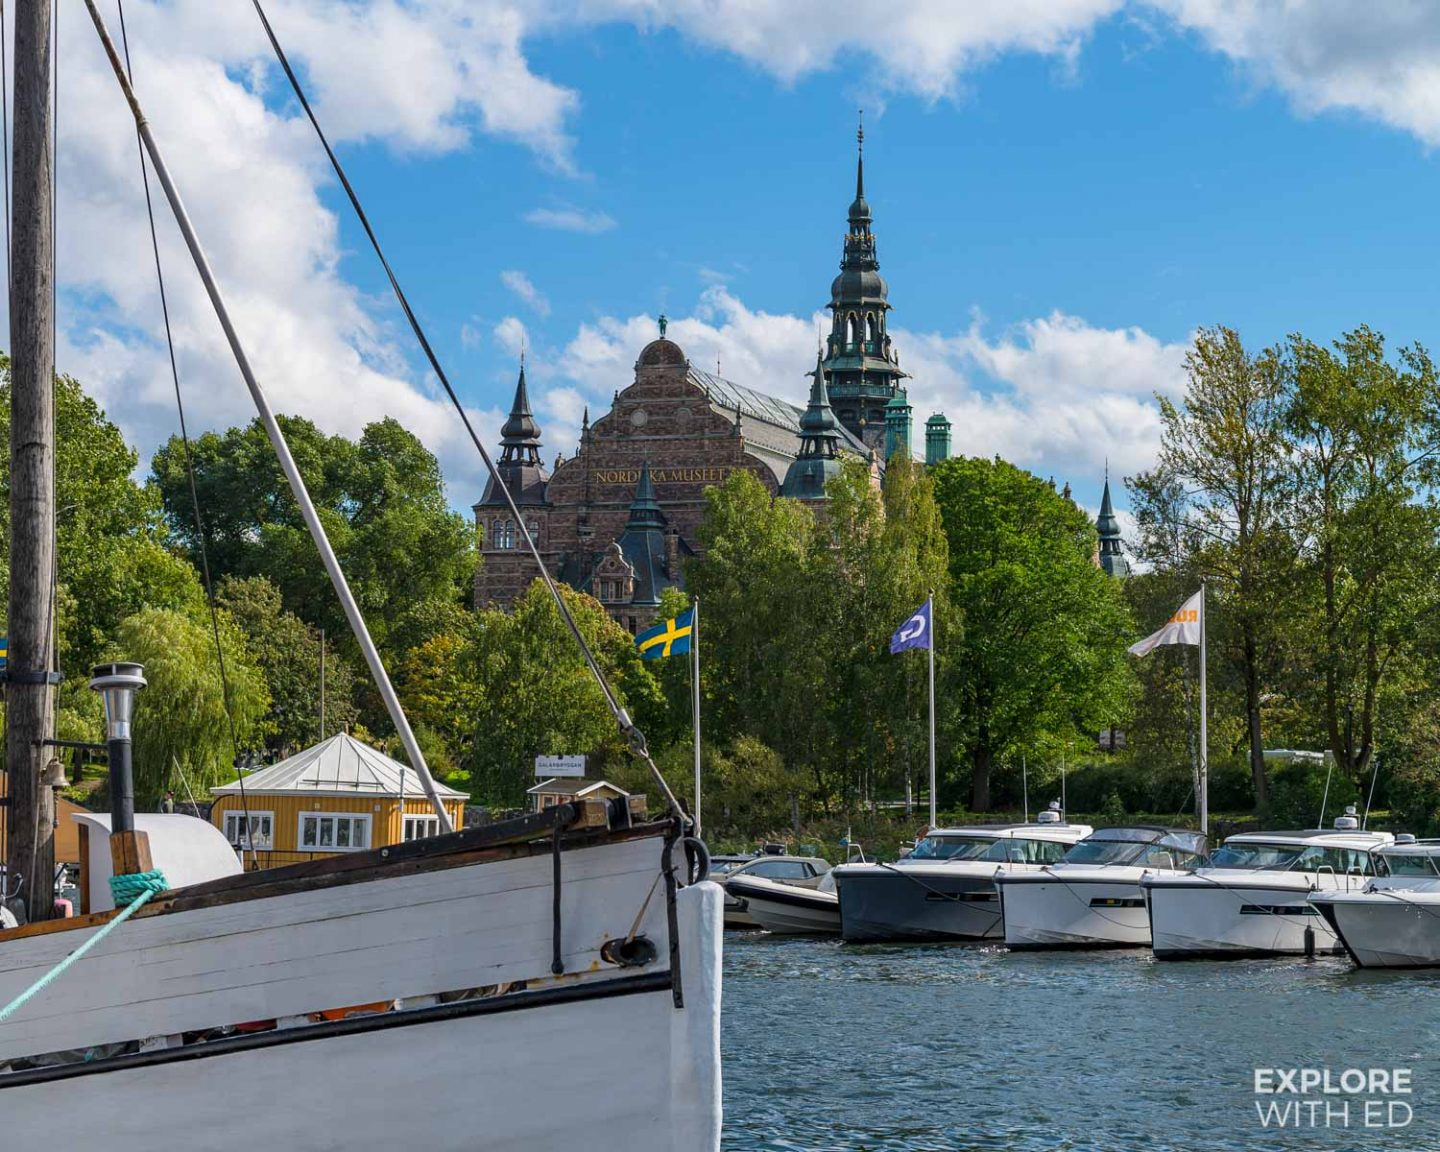 Stockholm Marina and Museum